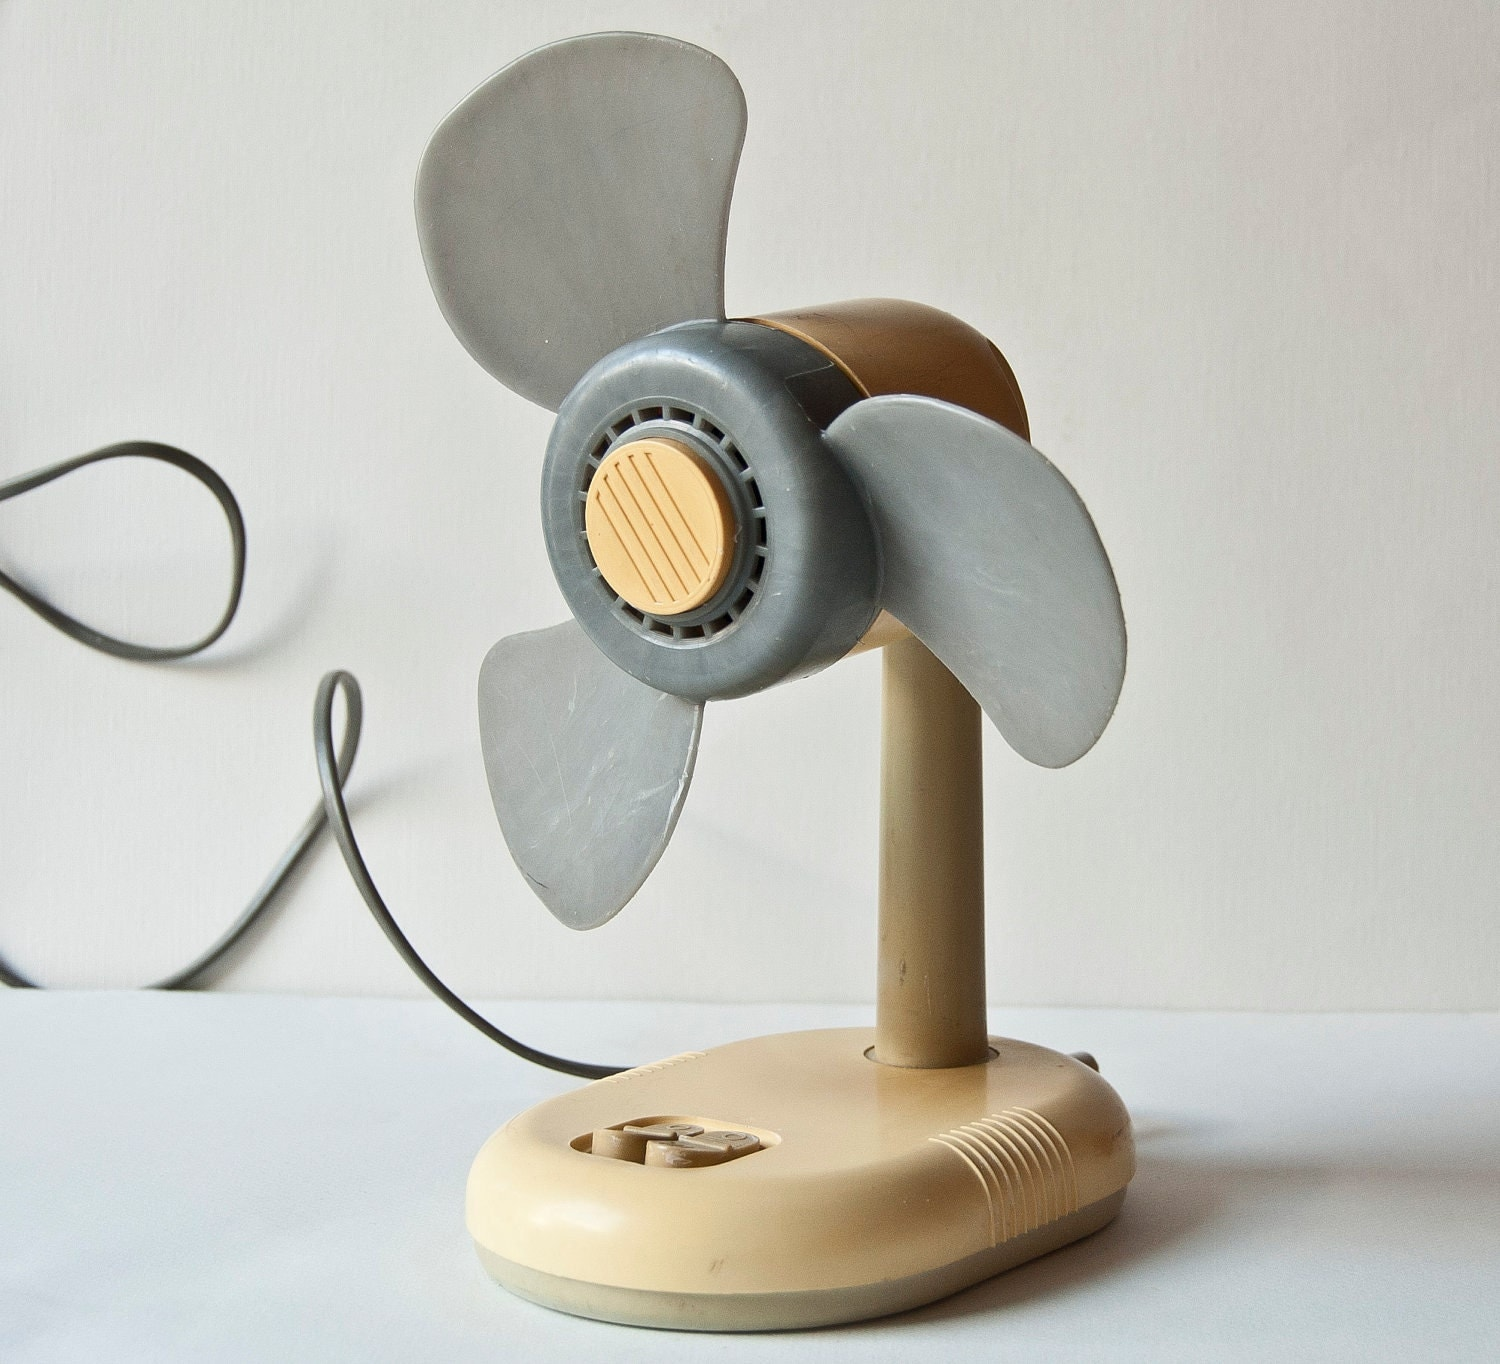 Wooden Electric Fan Vintage Electric Fan Little Tabletop Desk Fan Ventilator